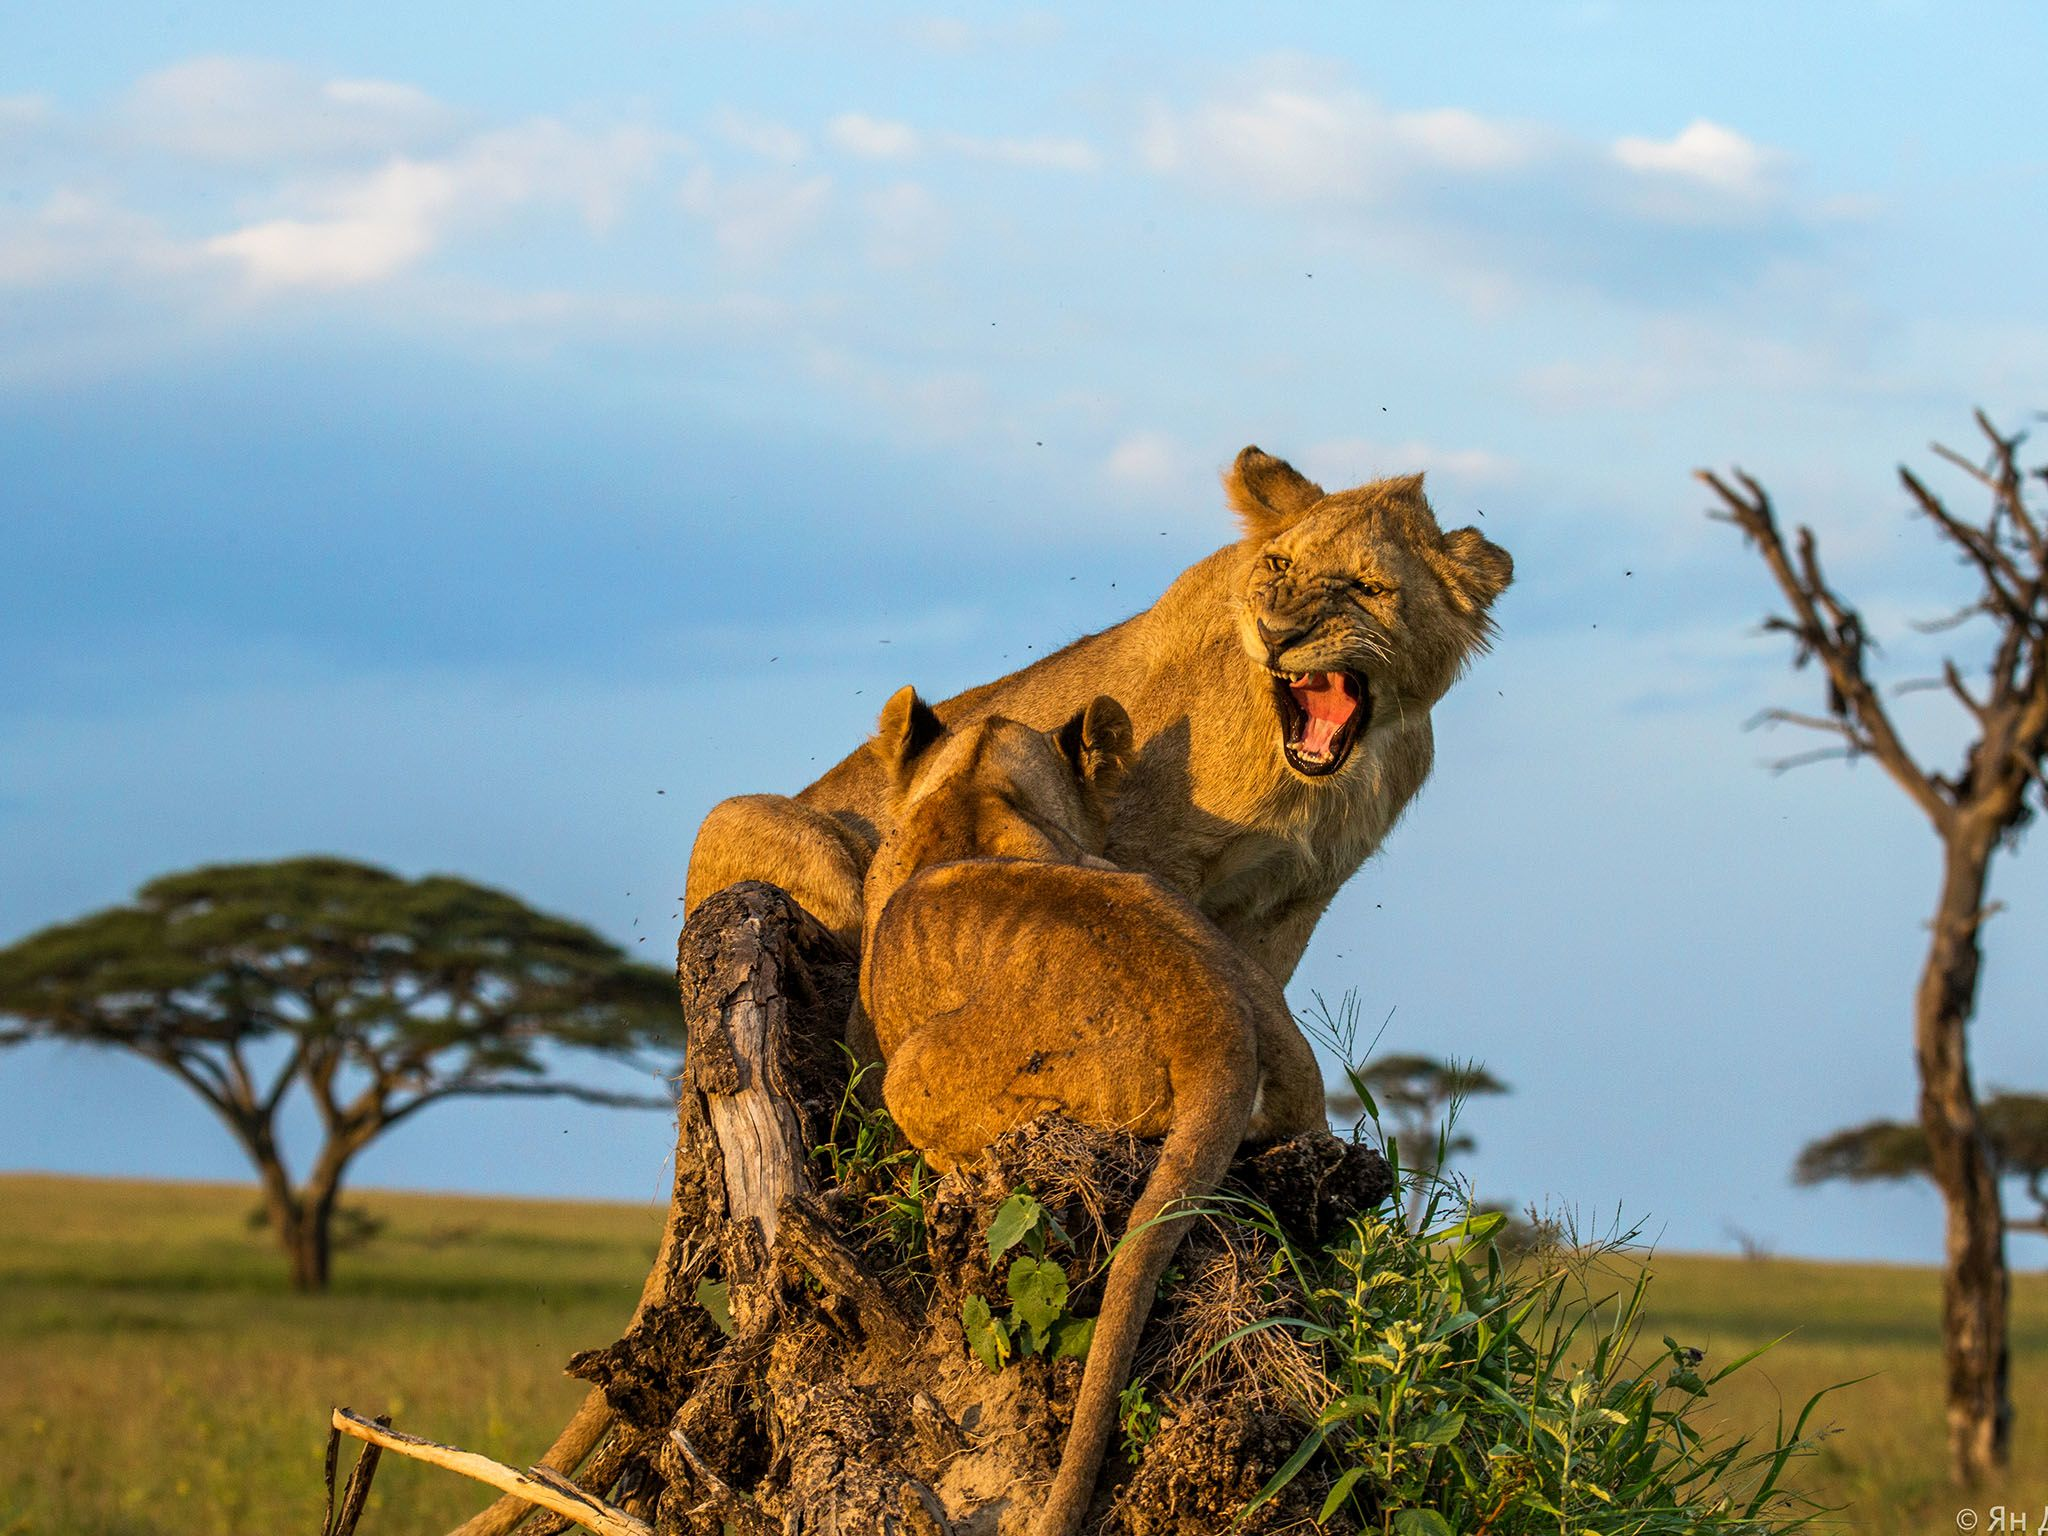 Tanzania, Africa: Lions crouching on mound of dirt and growling. This image is from MyGrations. [Photo of the day - May 2016]